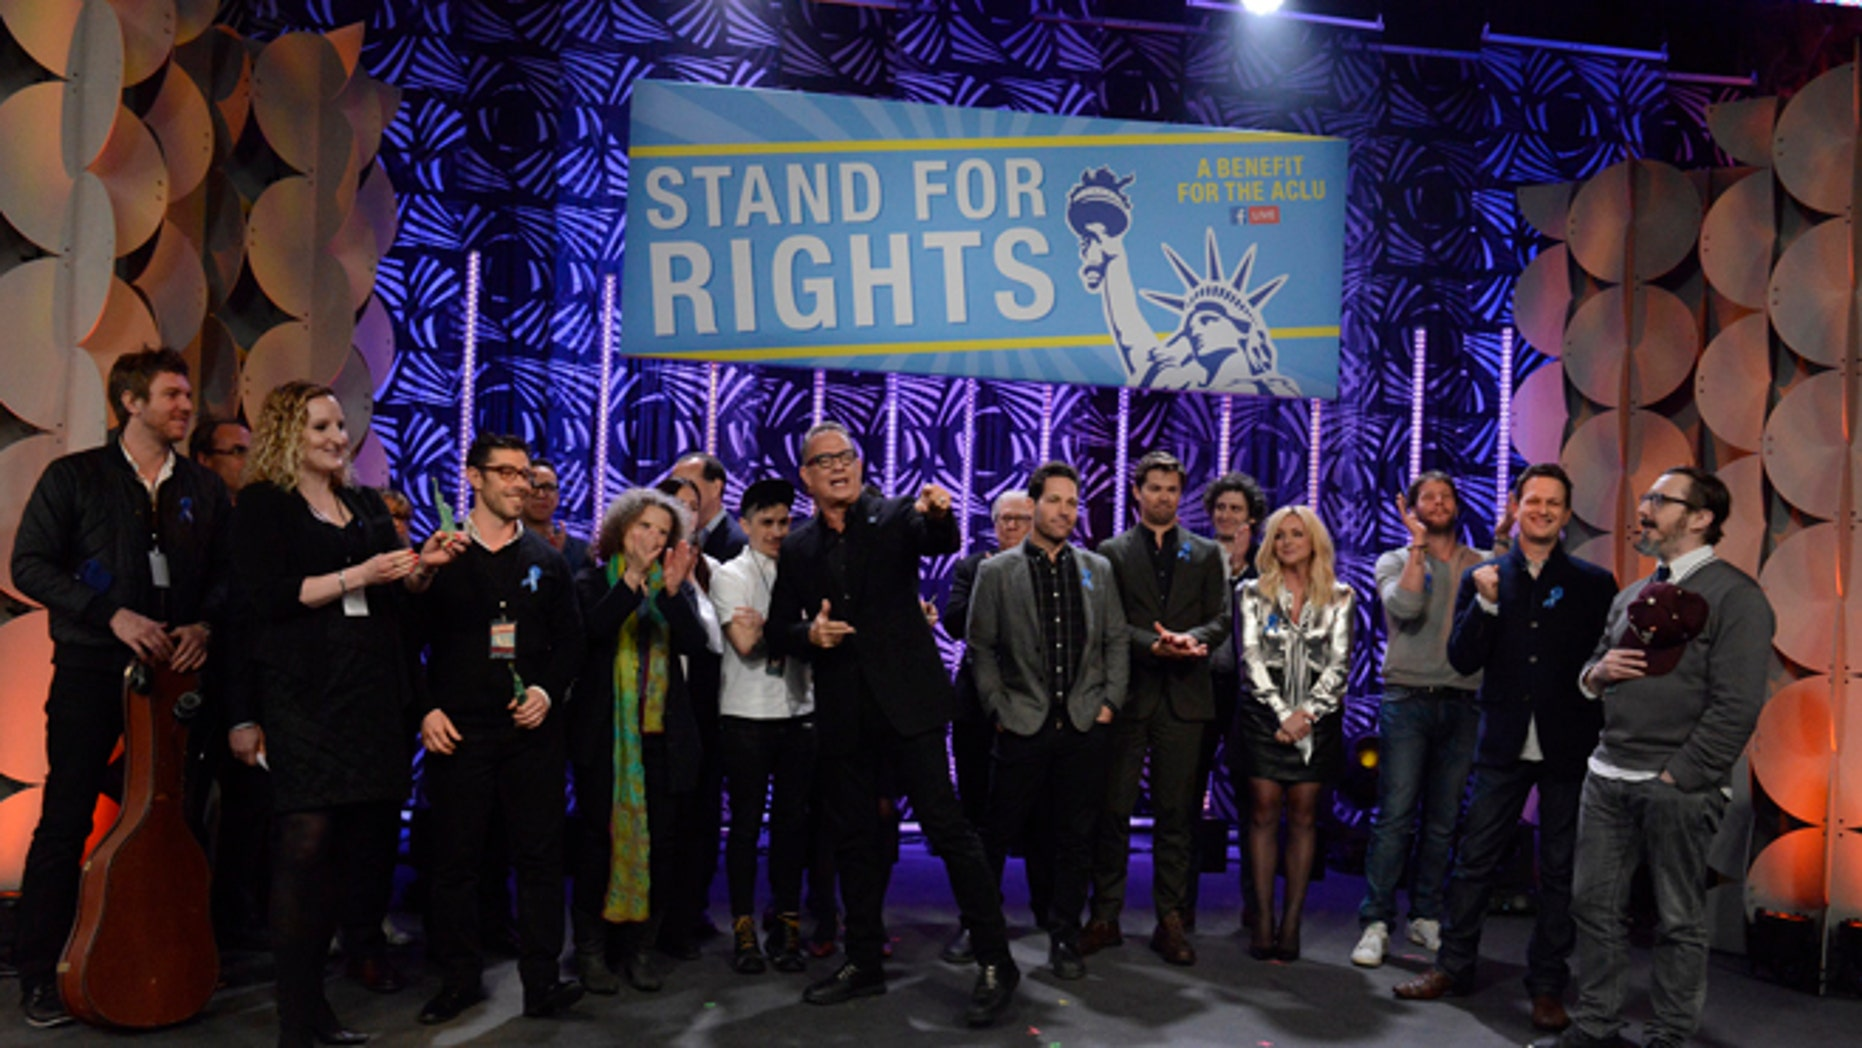 Tom Hanks, Alec Baldwin and other stars joined an online fundraiser for the ACLU.